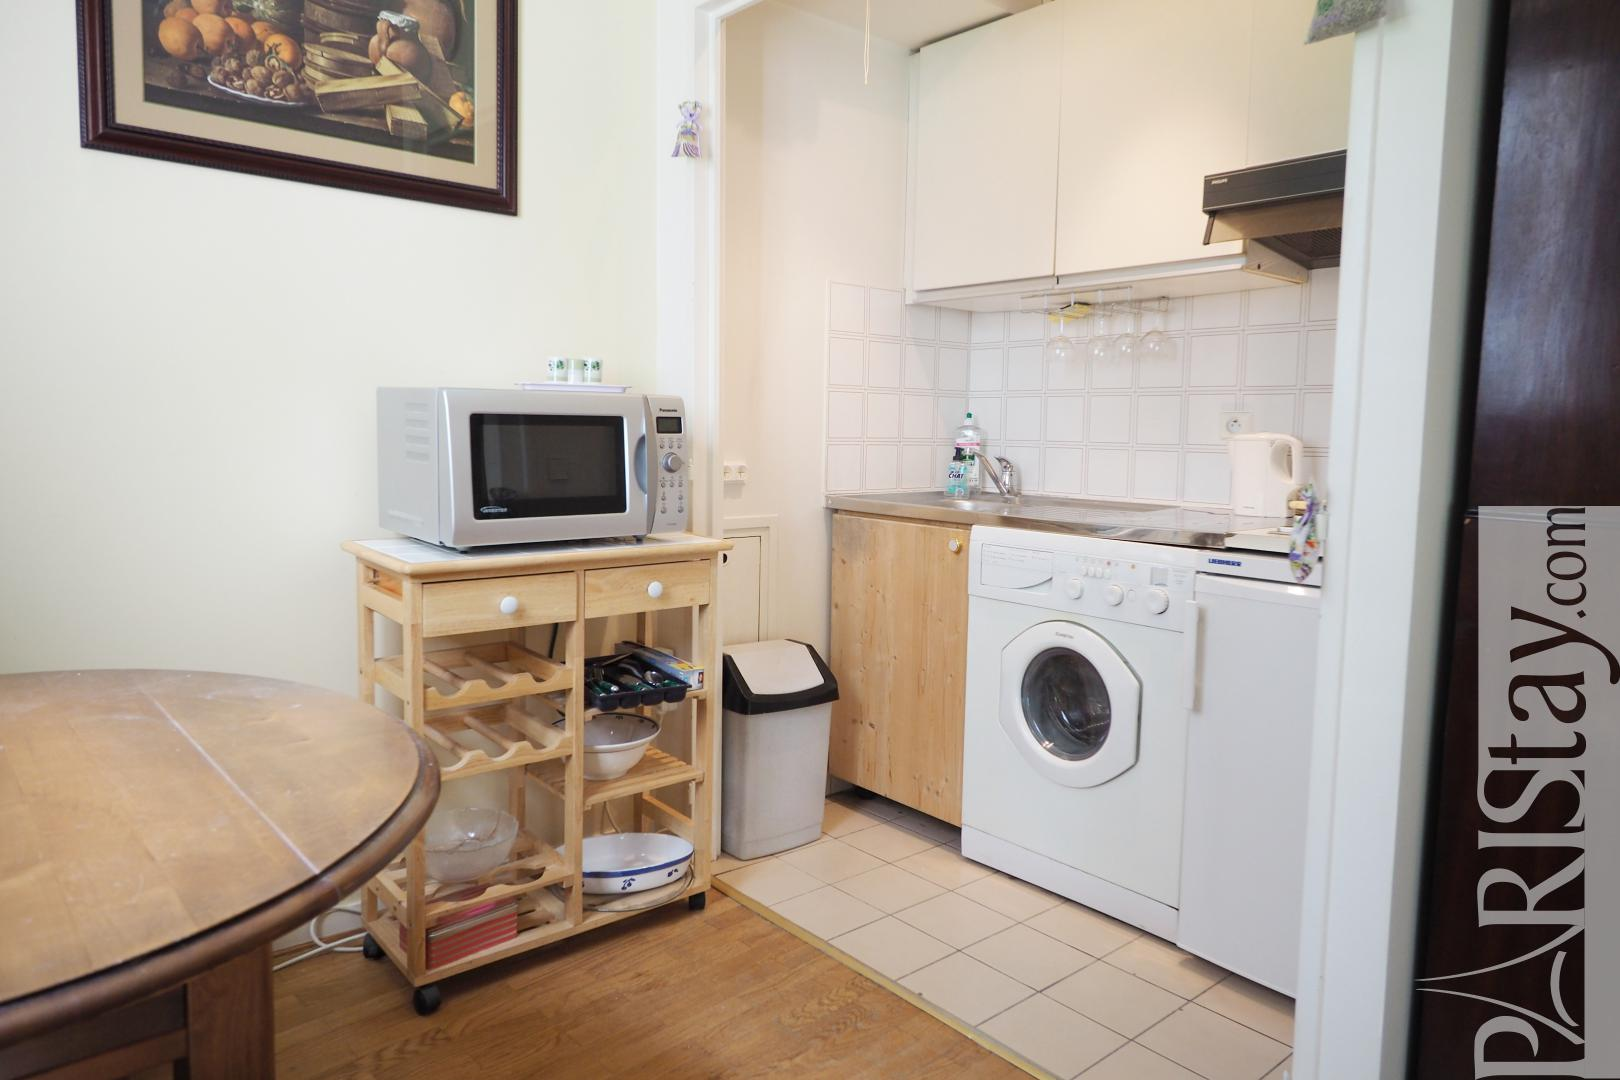 Location appartement paris studio alcove meuble 75007 for Location studio meuble paris